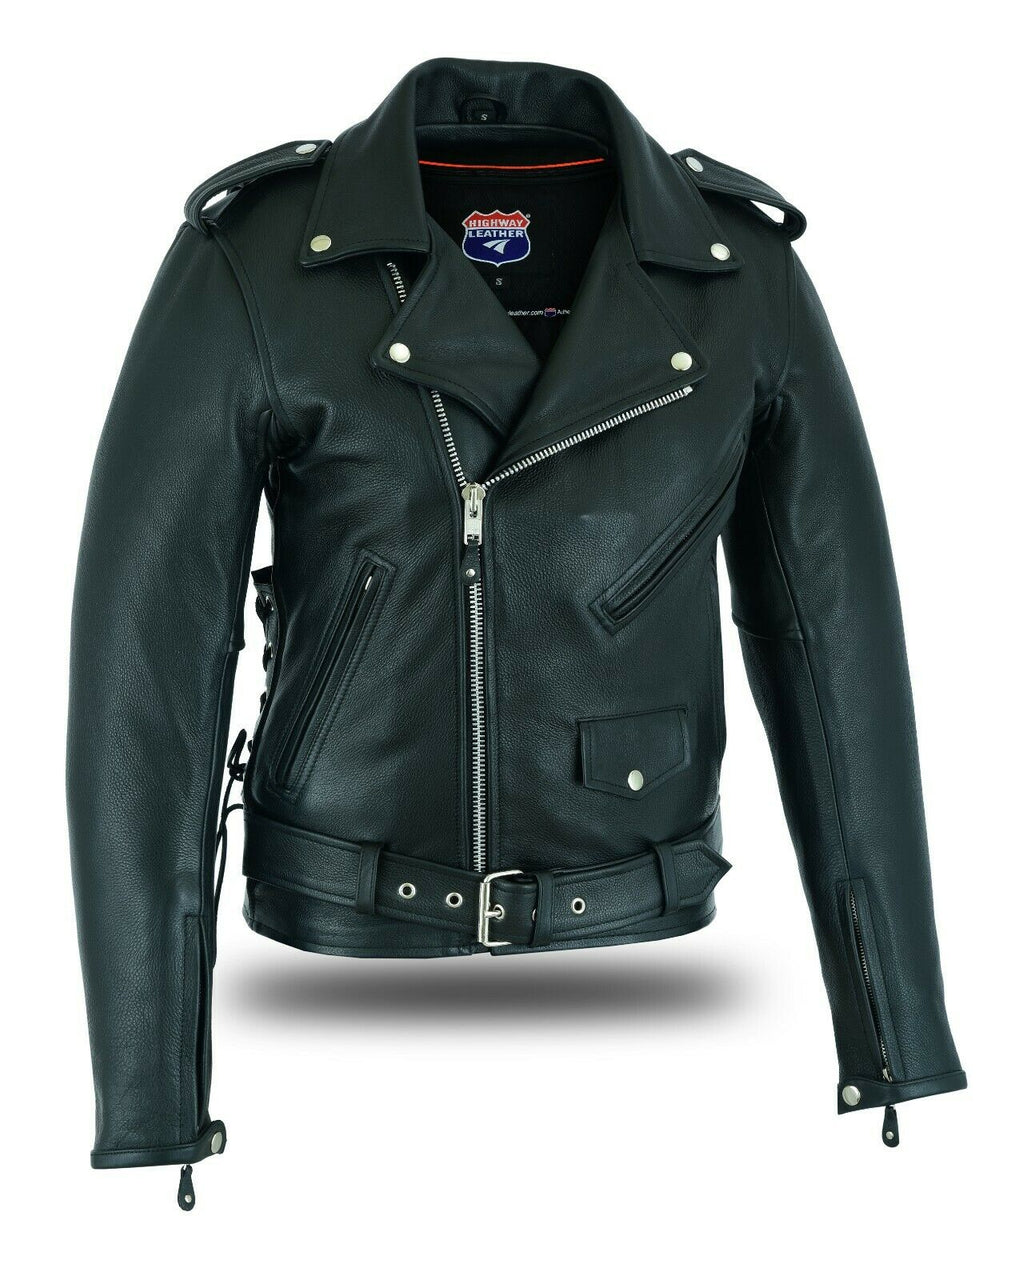 Highway Leather Old School Police Style Motorcycle Leather Jacket